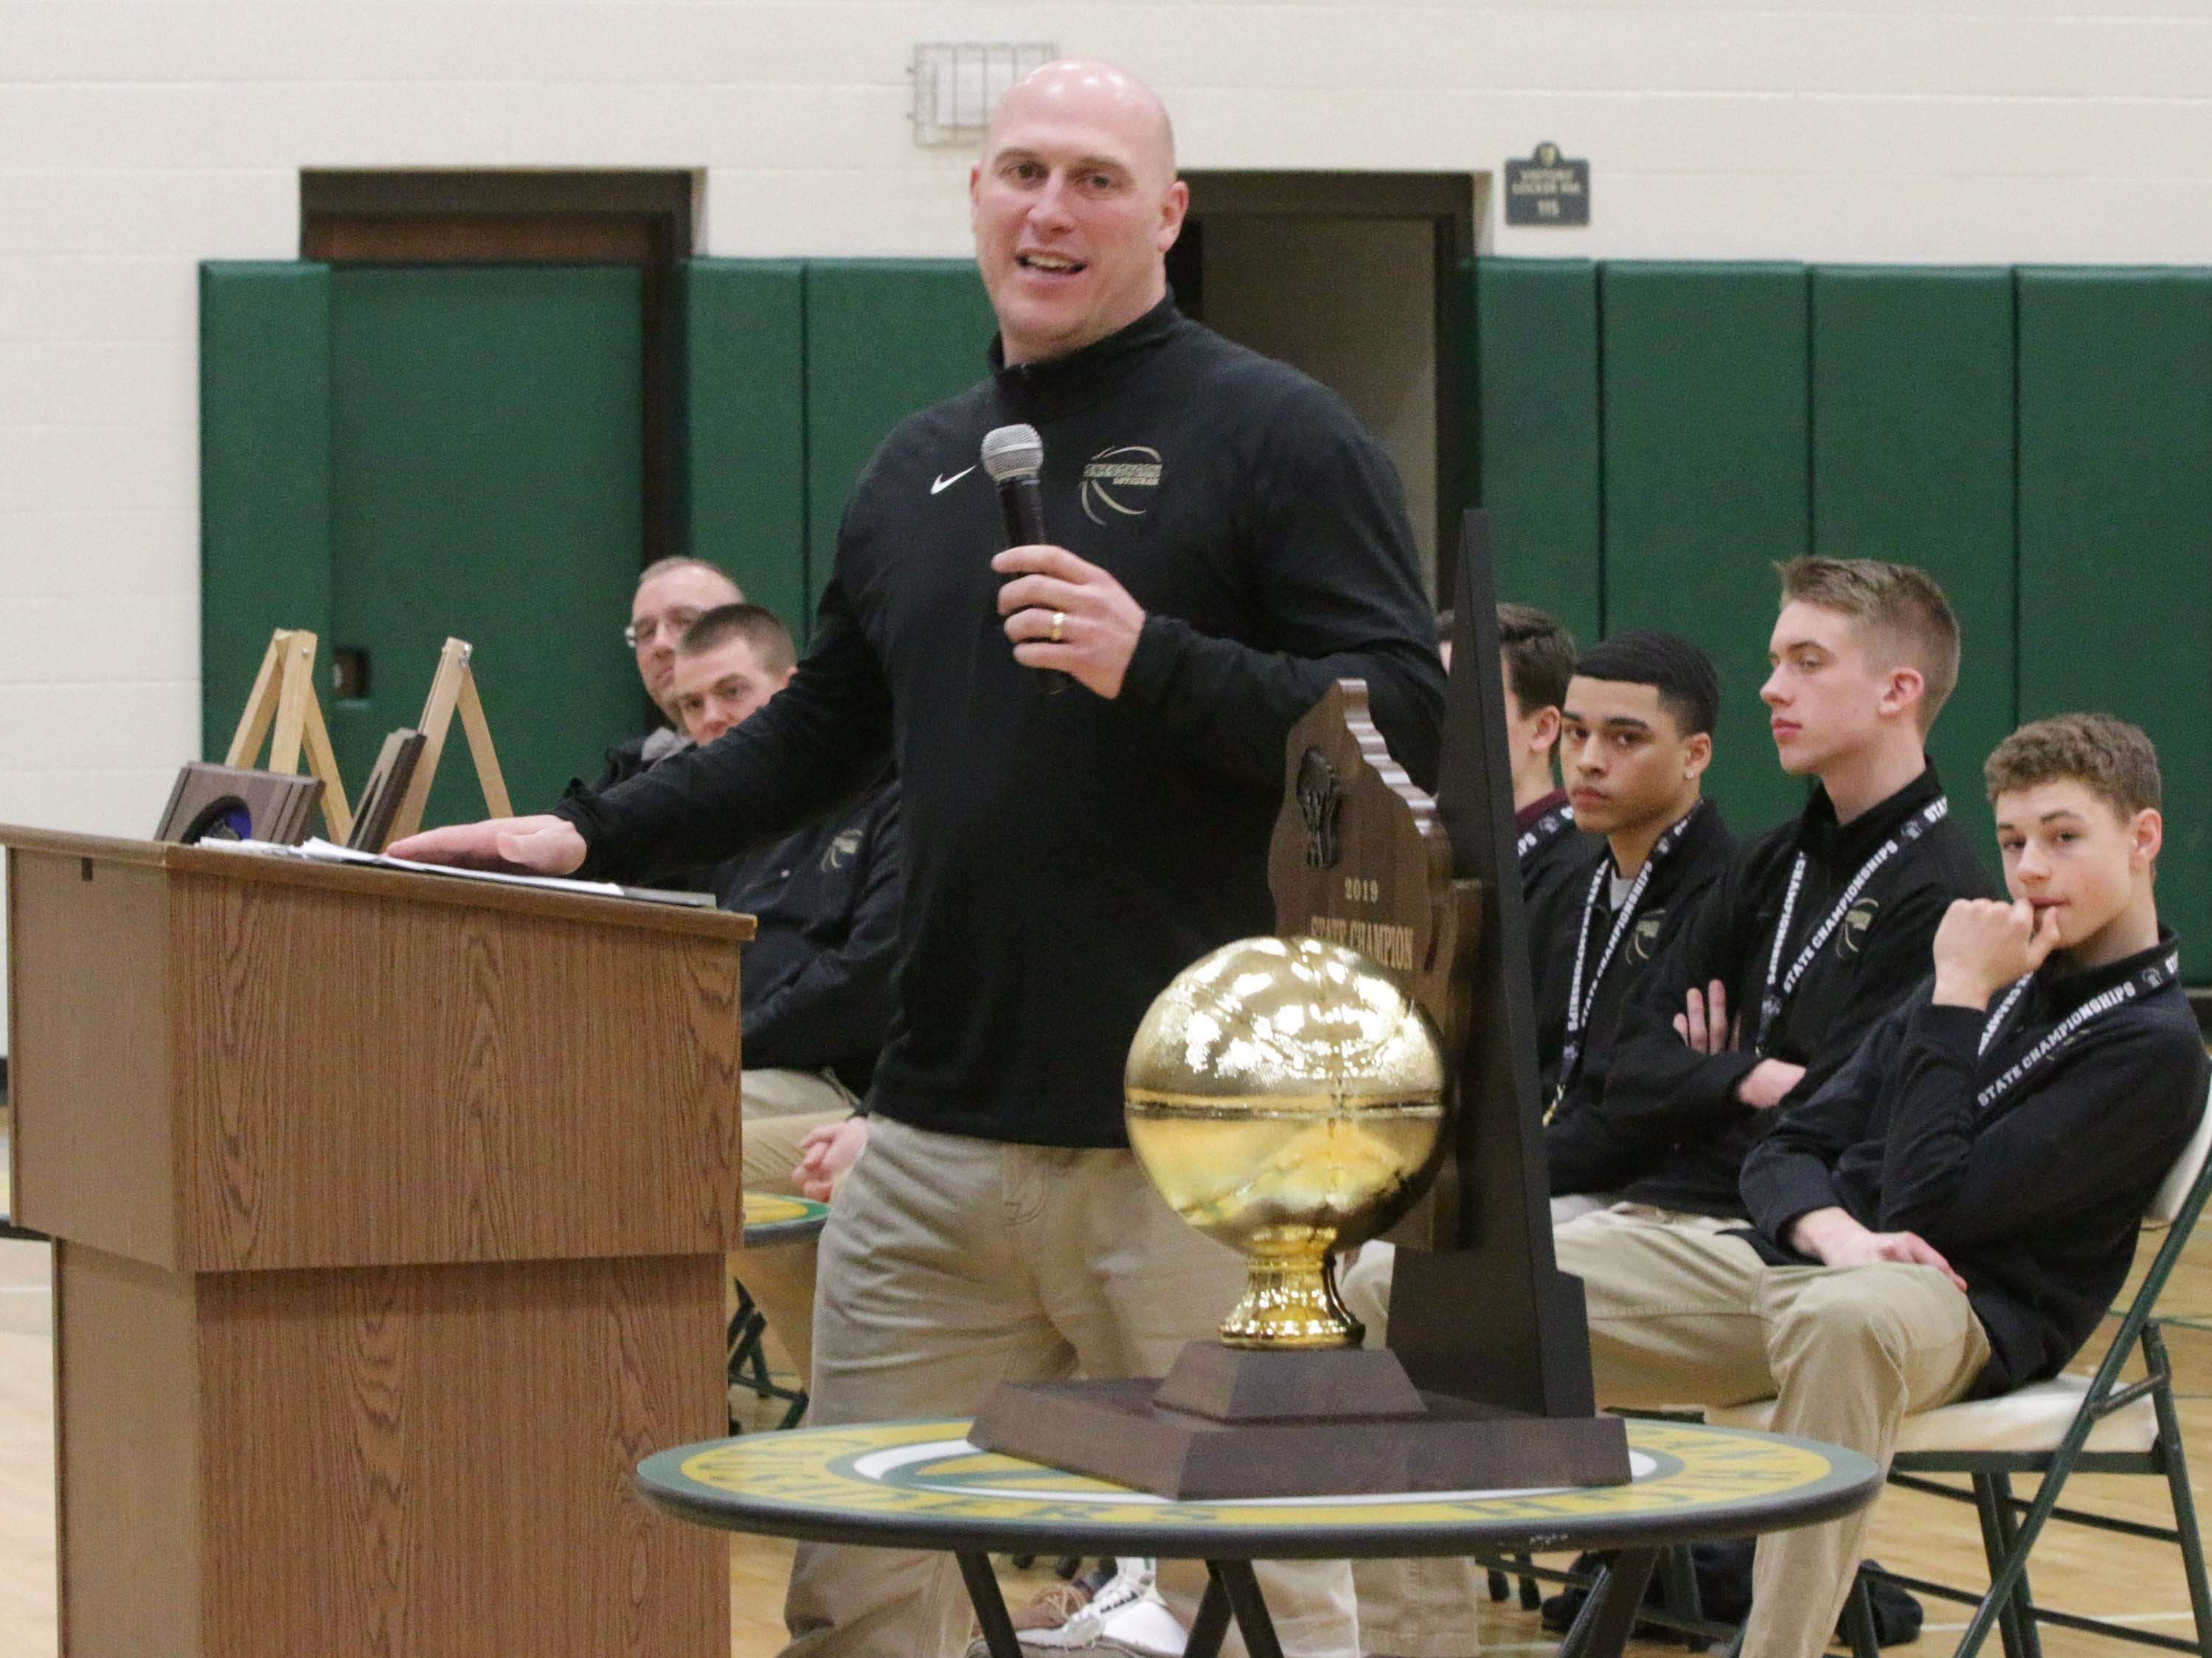 Sheboygan Lutheran basketball coach Nick Verhagen, left, speaks during the WIAA Div. 5 State Championship rally, Sunday, March 17, 2019, in Sheboygan, Wis.